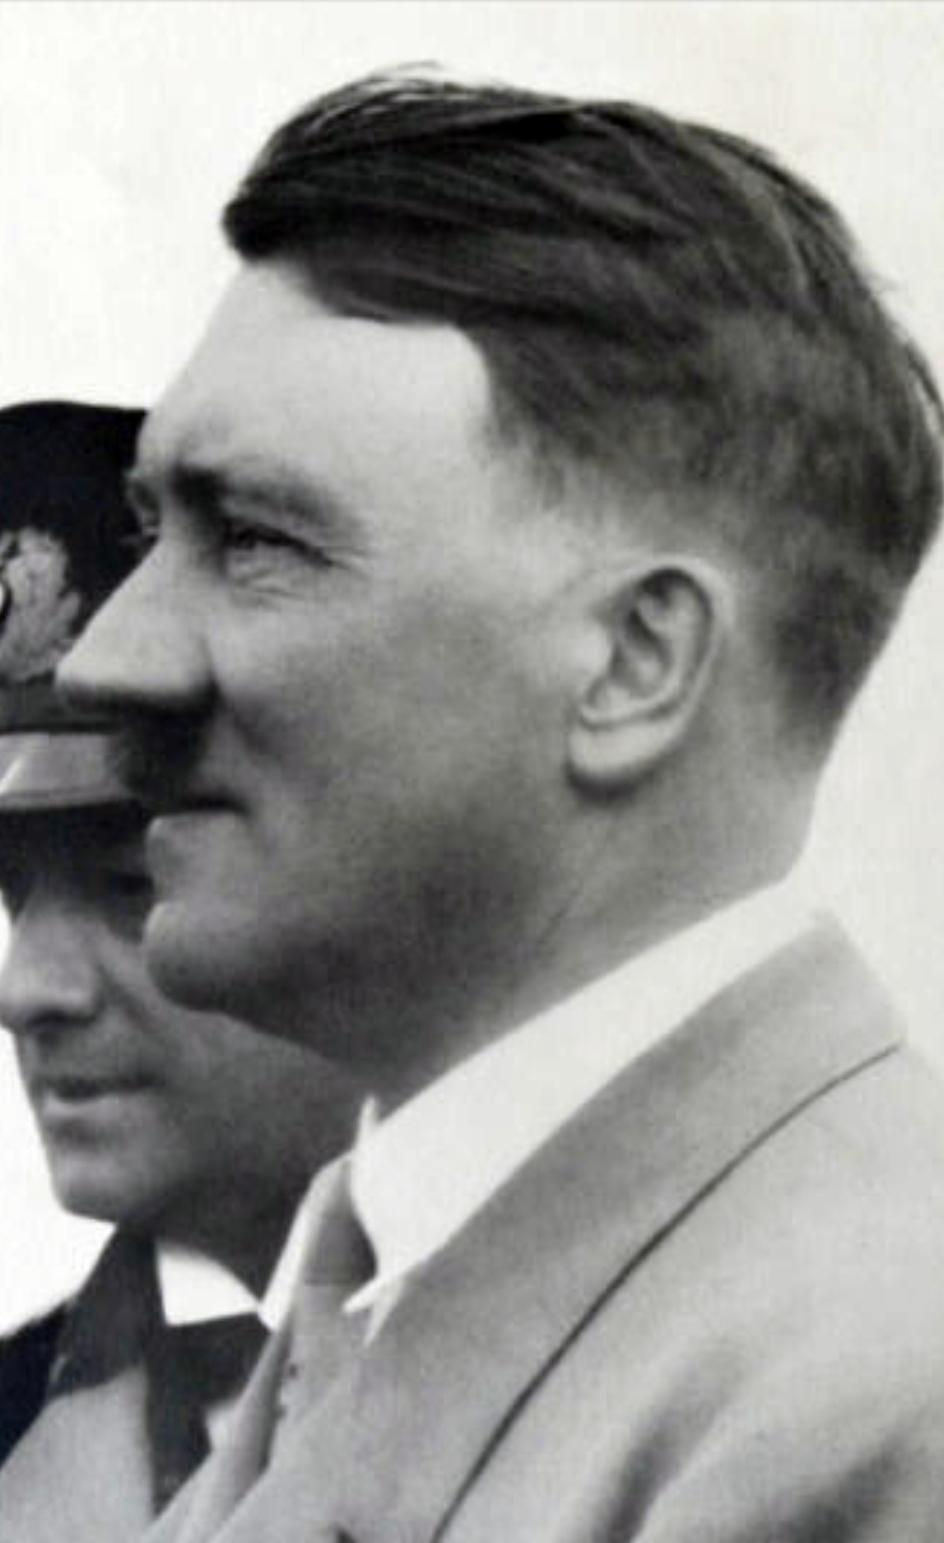 Hitler Youth Haircut Reddit : hitler, youth, haircut, reddit, Without, Getting, Arrested?, Malehairadvice